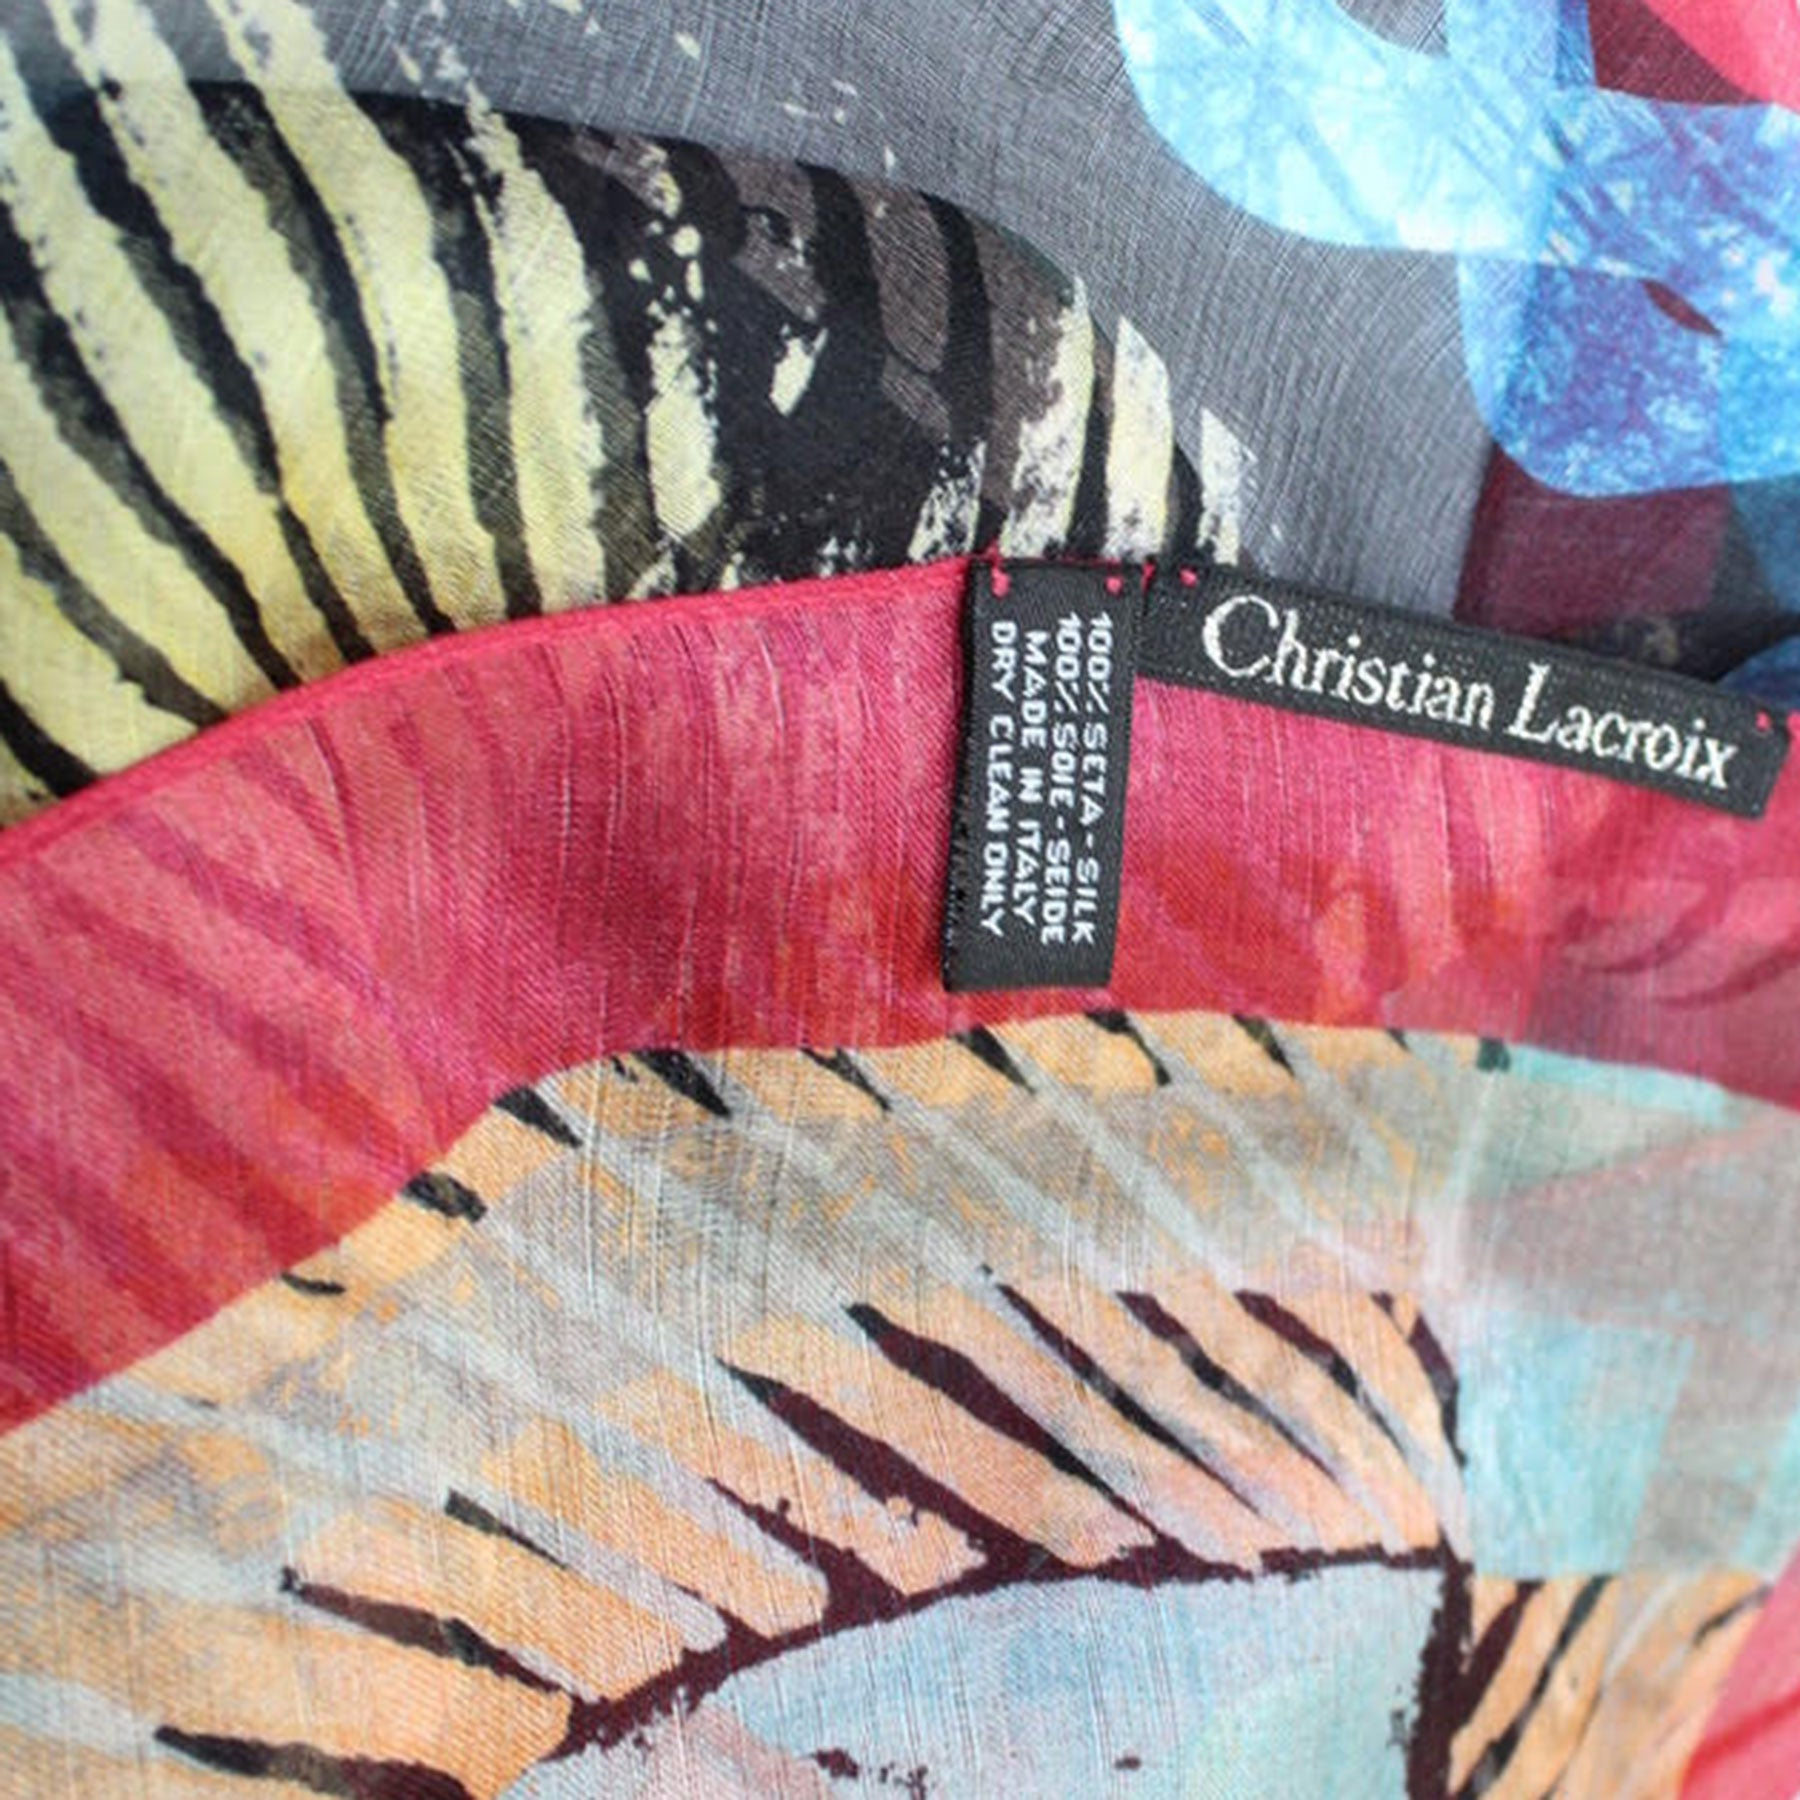 Christian Lacroix Scarf Original Print Royal Black Red Geometric Floral - Extra Large Cashmere Silk Square Wrap